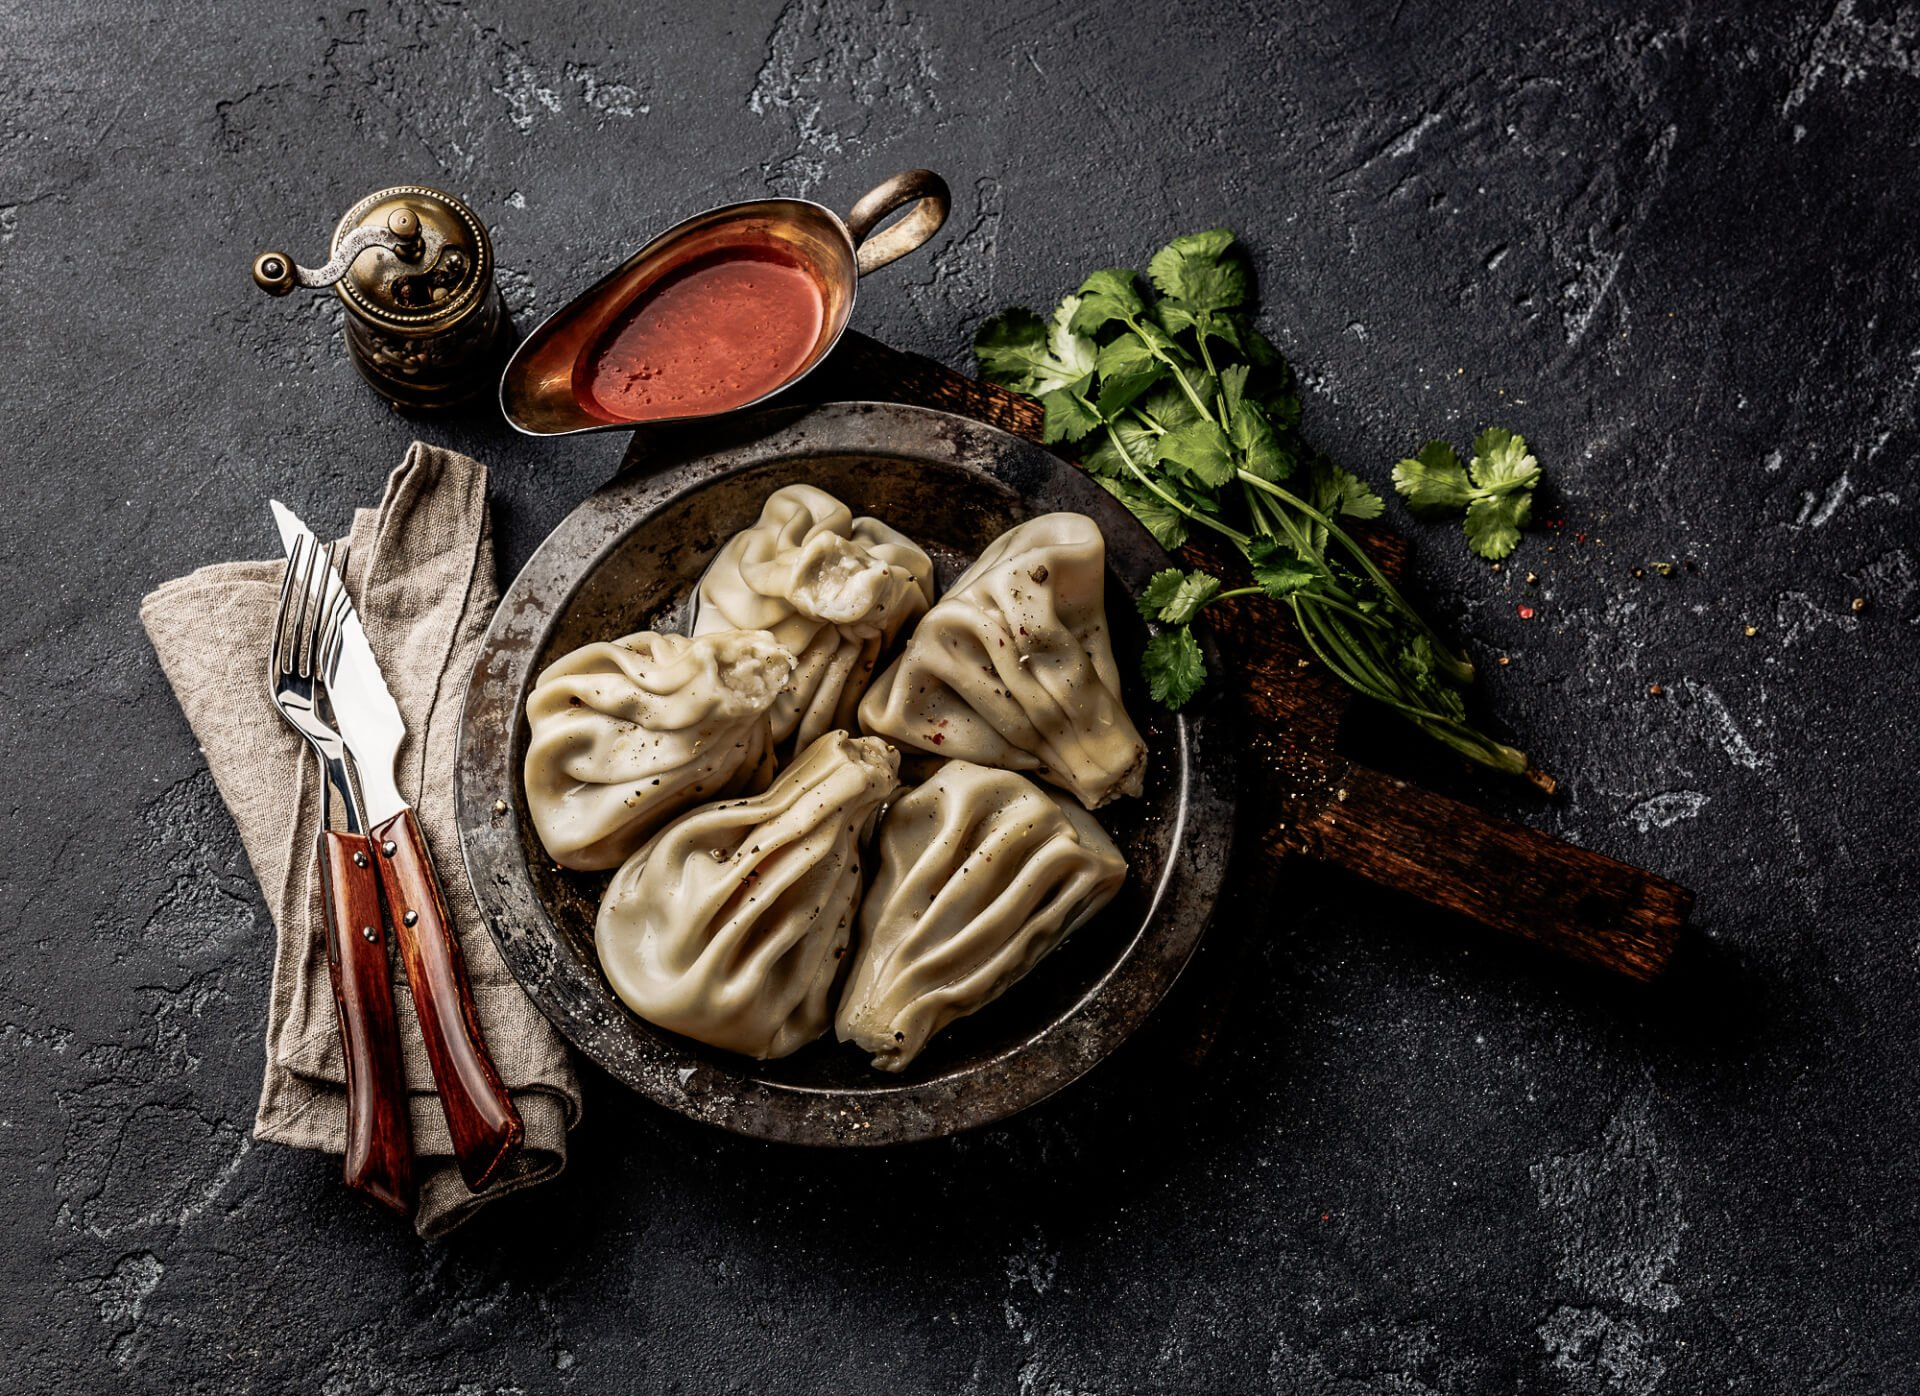 Georgian dumplings Khinkali with meat and tomato spicy sauce satsebeli on dark stone background